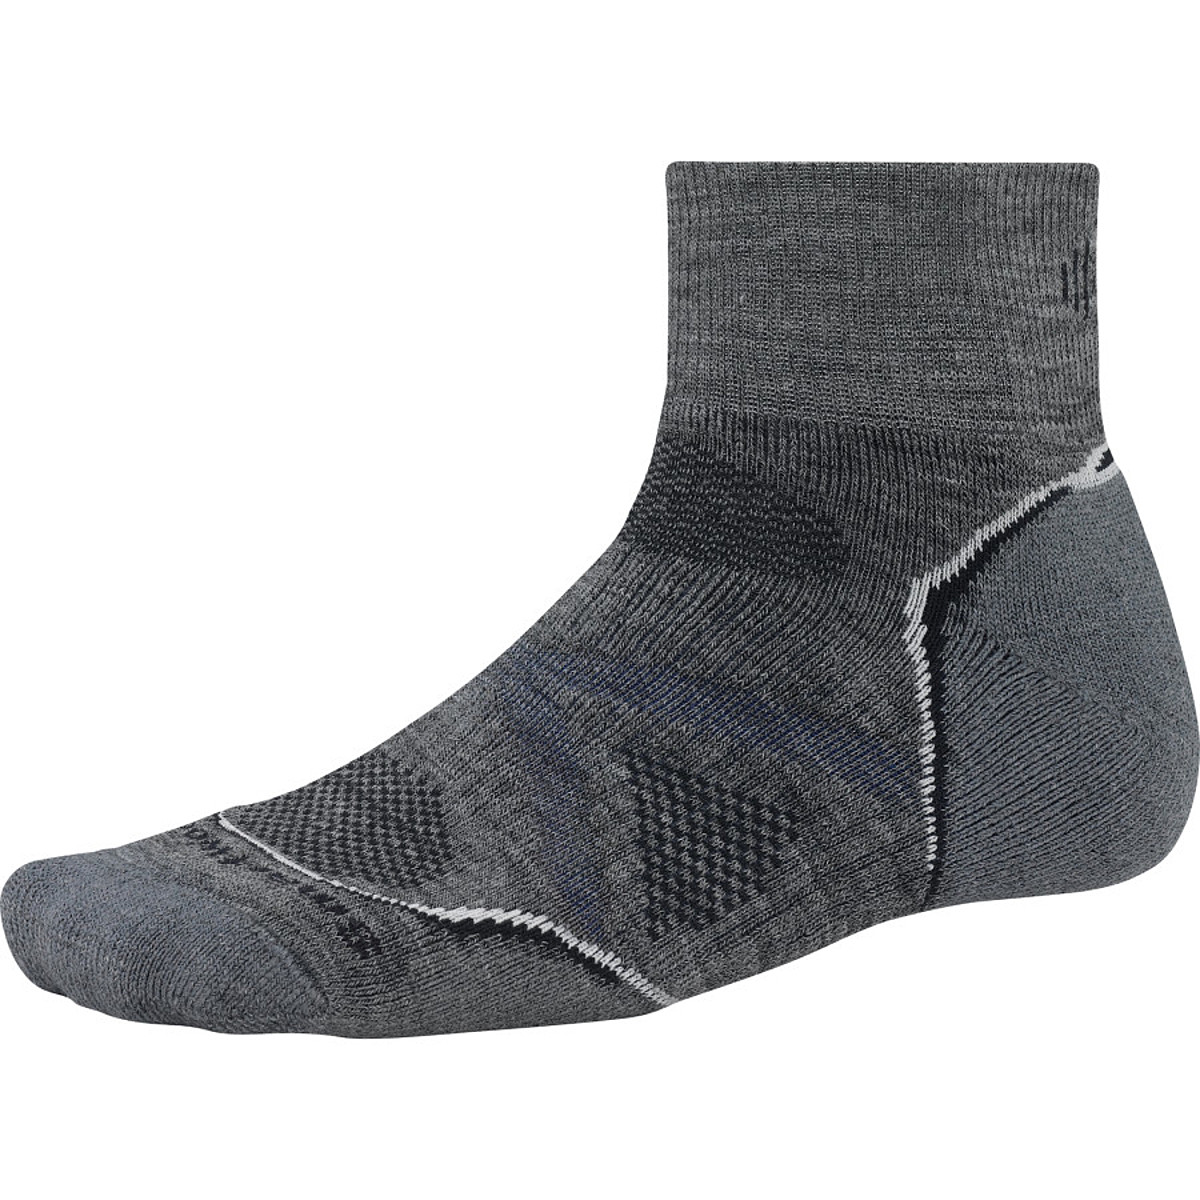 Smartwool PhD Outdoor Medium Mini